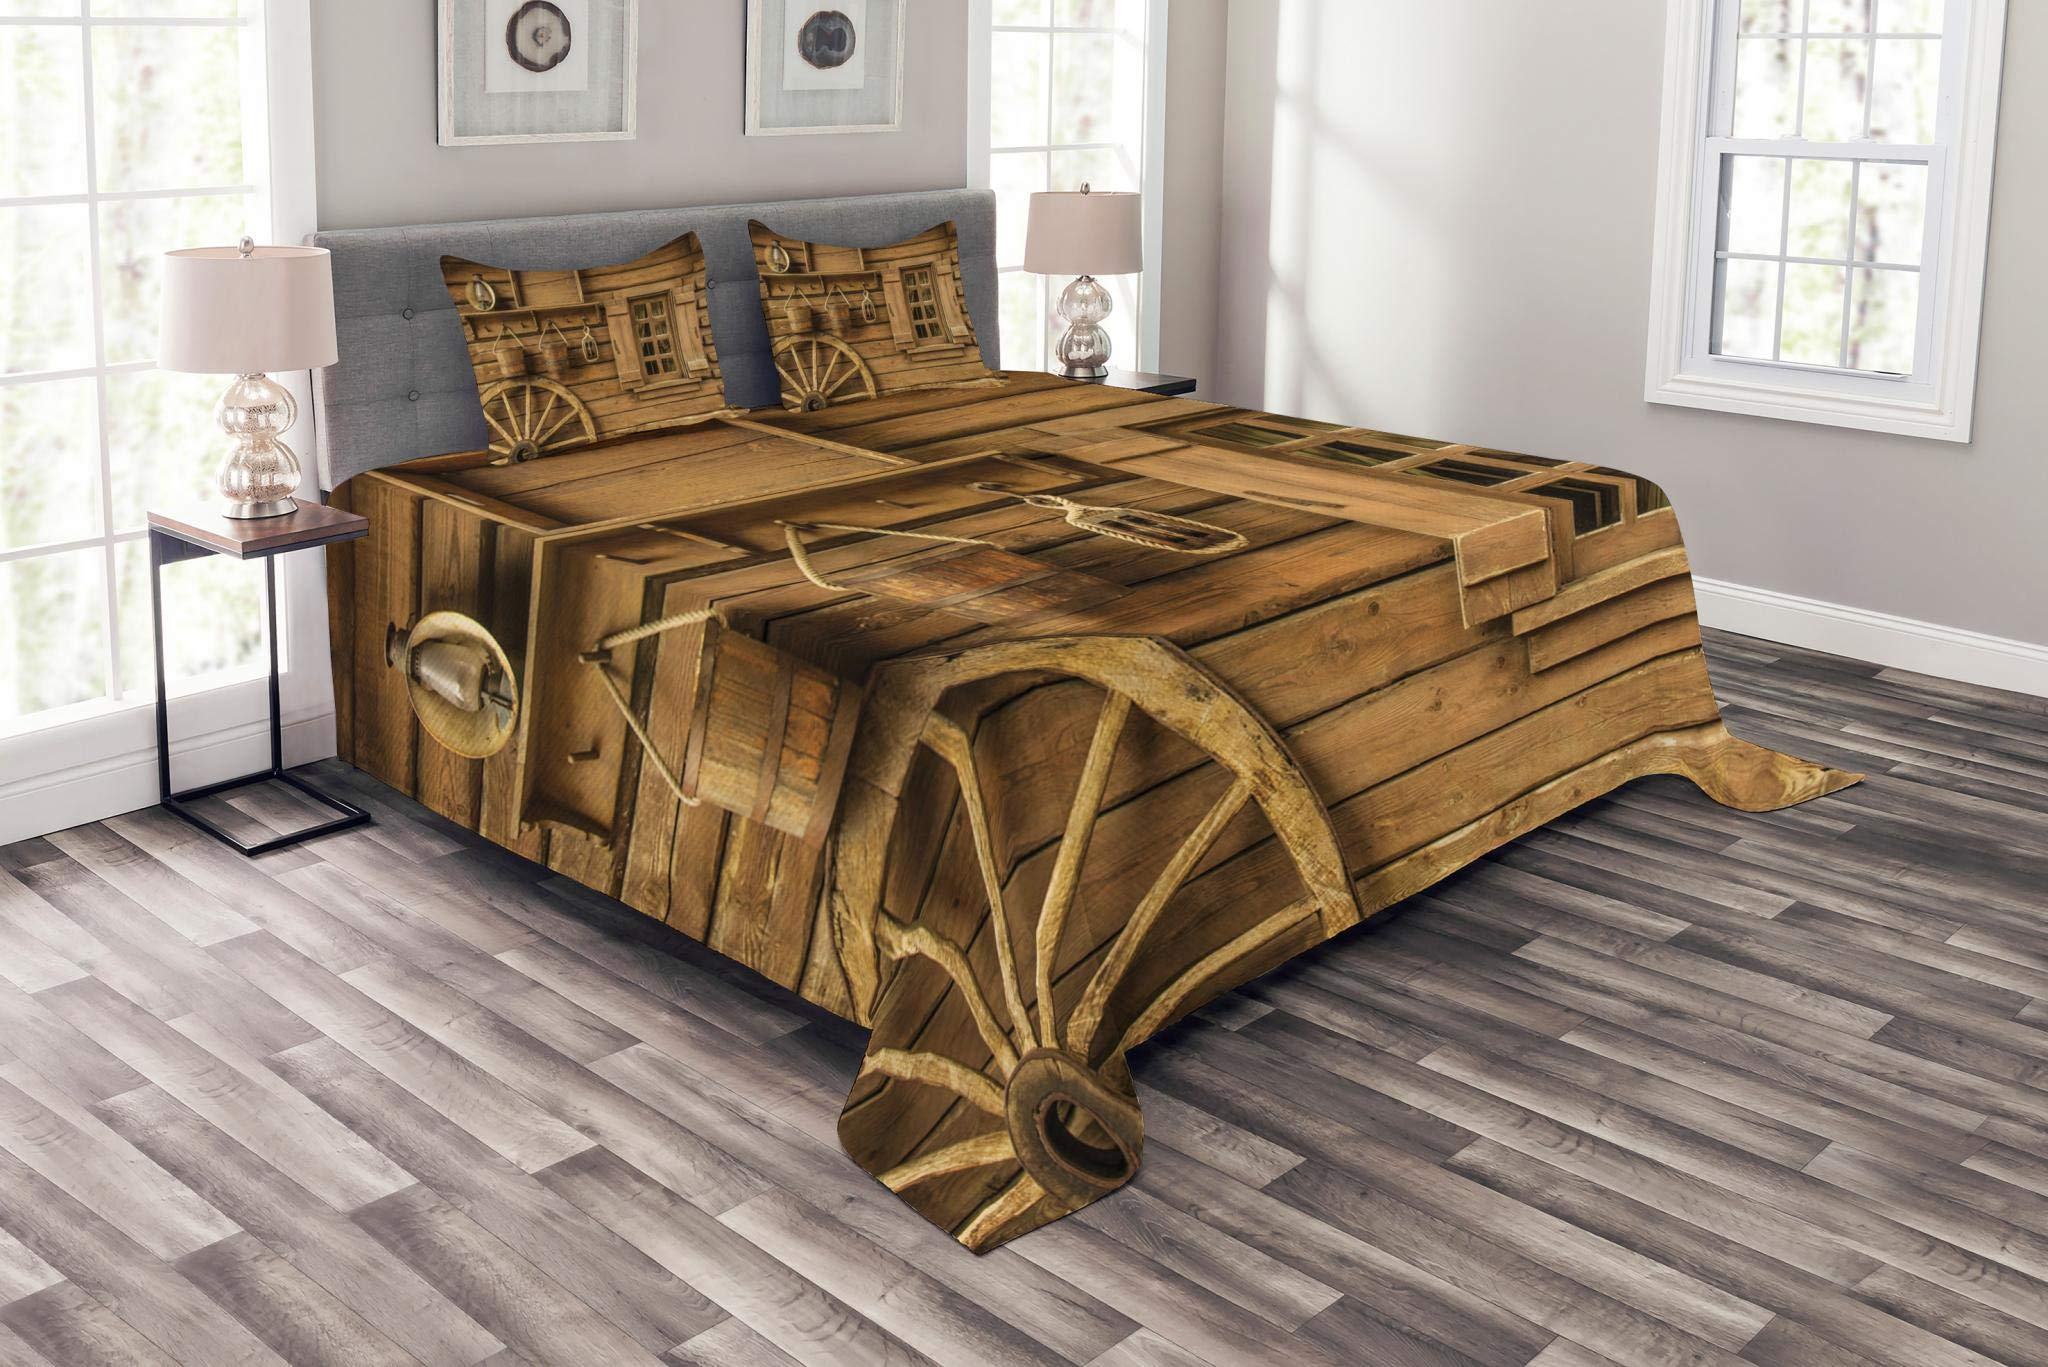 Lunarable Western Bedspread Set King Size, Ancient Old Wagon Wheel Next to Rustic Wooden House Vintage Lantern Window Buckets Print, Decorative Quilted 3 Piece Coverlet Set with 2 Pillow Shams, Brown